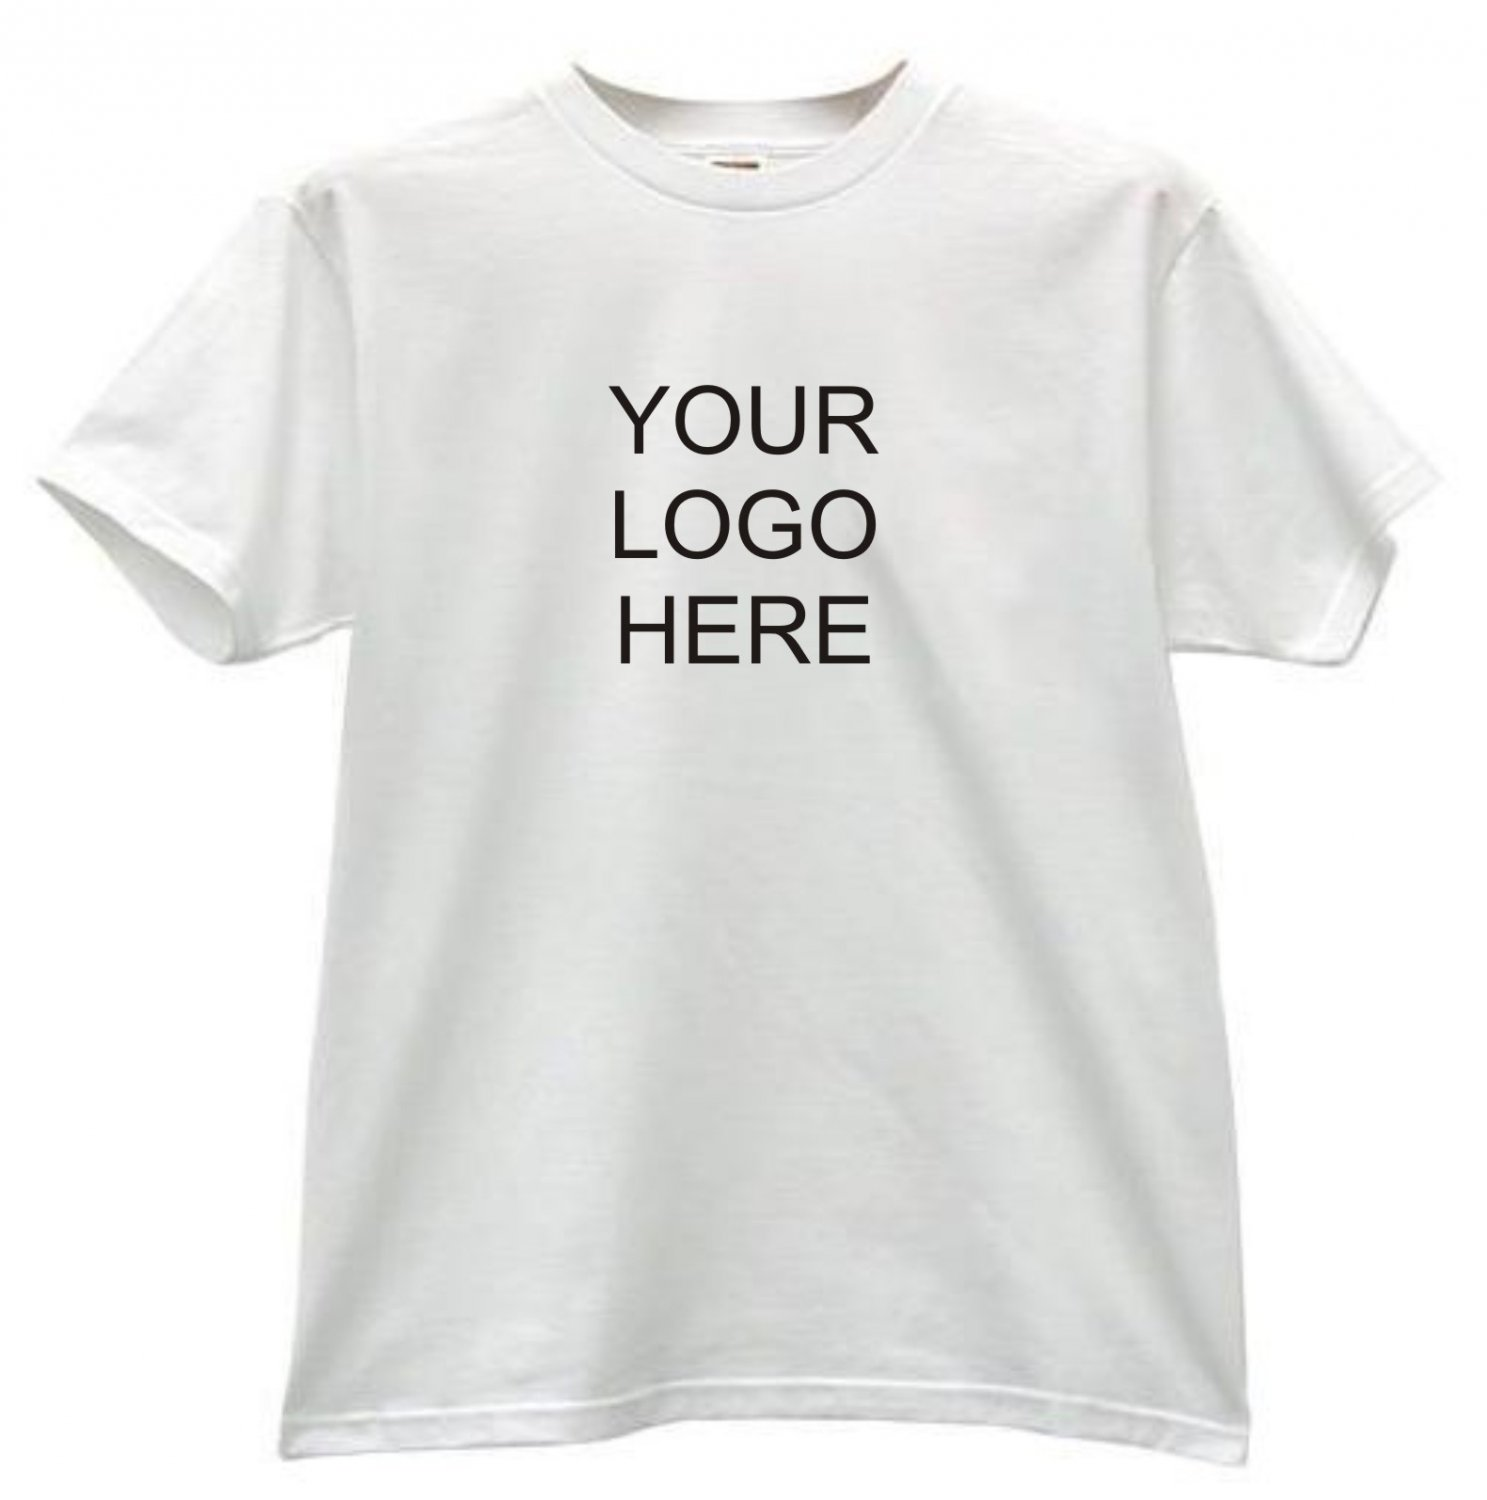 Personalised Printing / Design Your Own T Shirt Stag Men Custom Printed T-Shirts